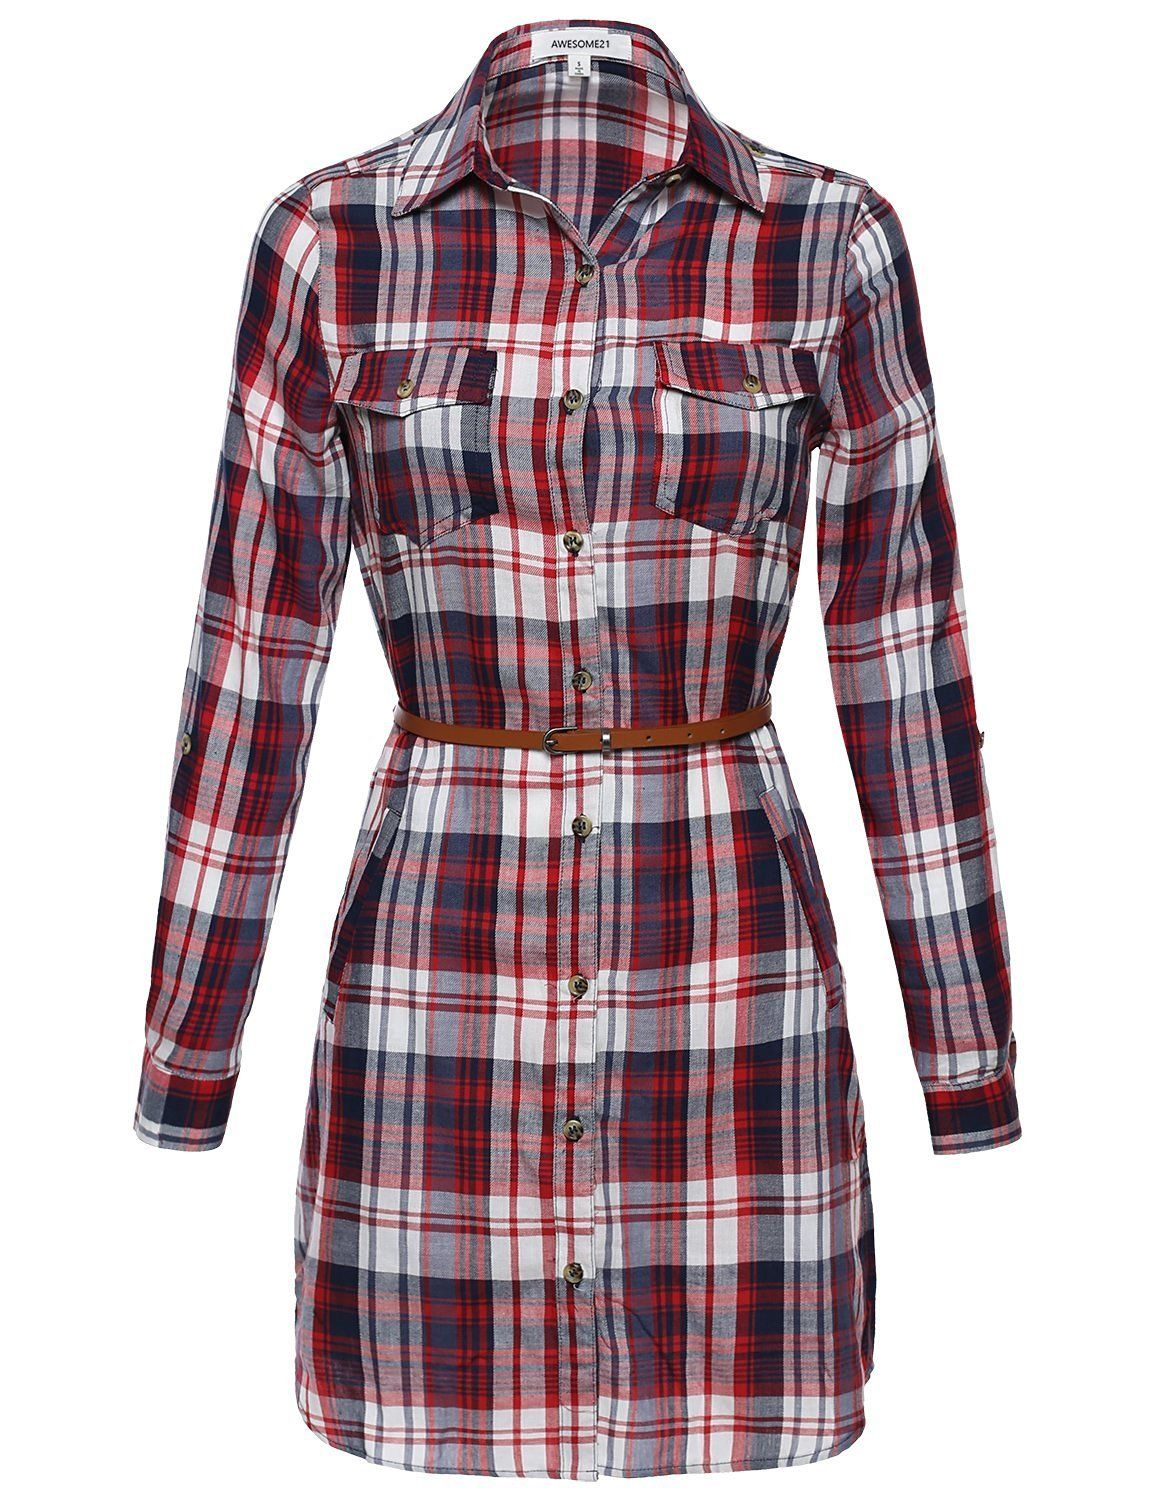 5ca92dc859 Goodj Women's Long Sleeve Button Down Plaid Dress w/Attached Belt AWDSD0644  Red Medium -- Awesome products selected by Anna Churchill